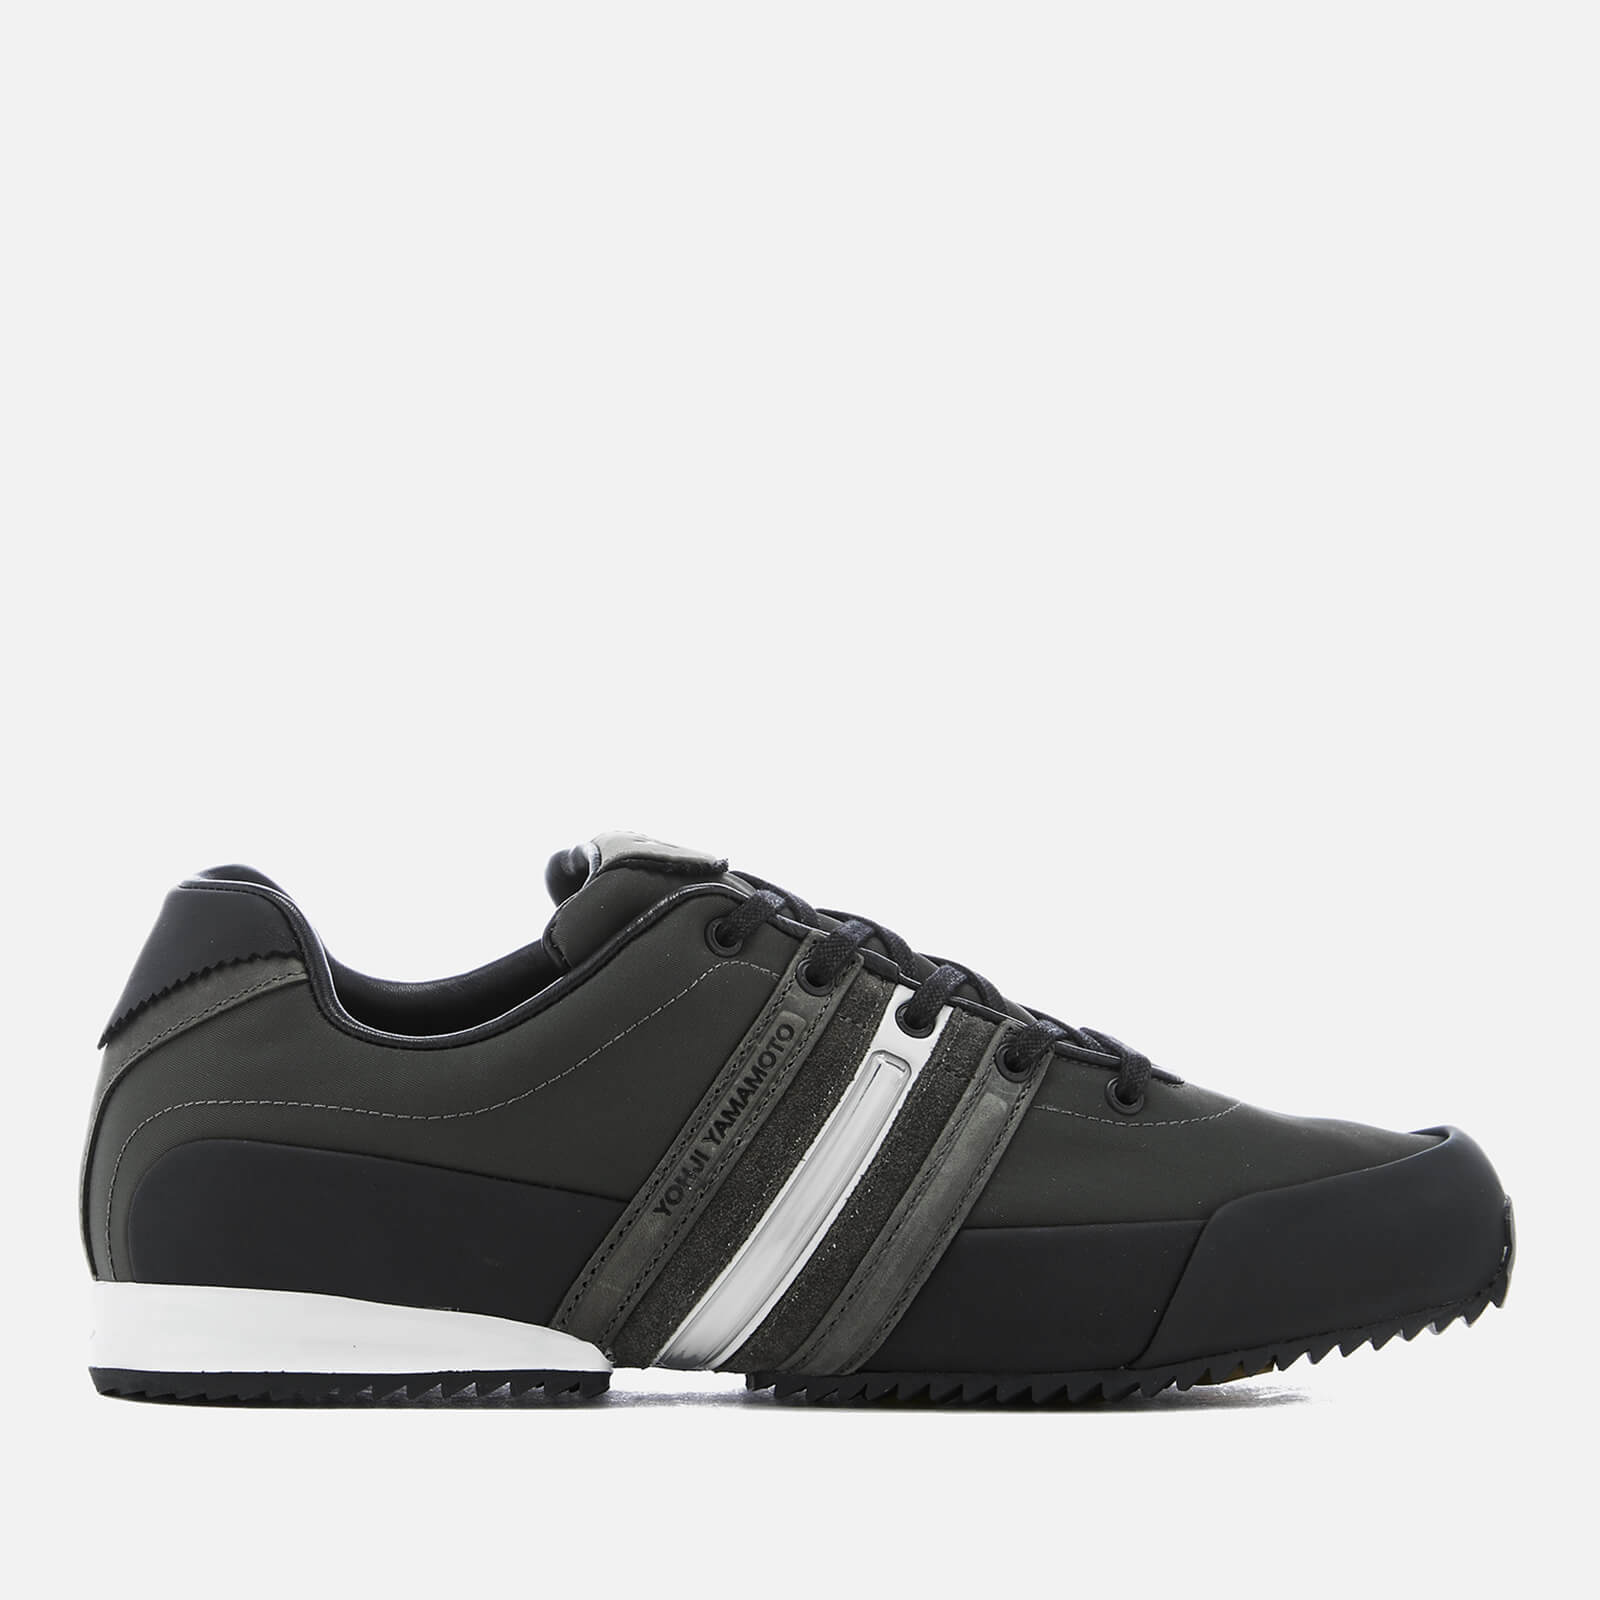 the best attitude 075a8 d71bd Y-3 Men s Sprint Sneakers - Y-3 Black Olive - Free UK Delivery over £50